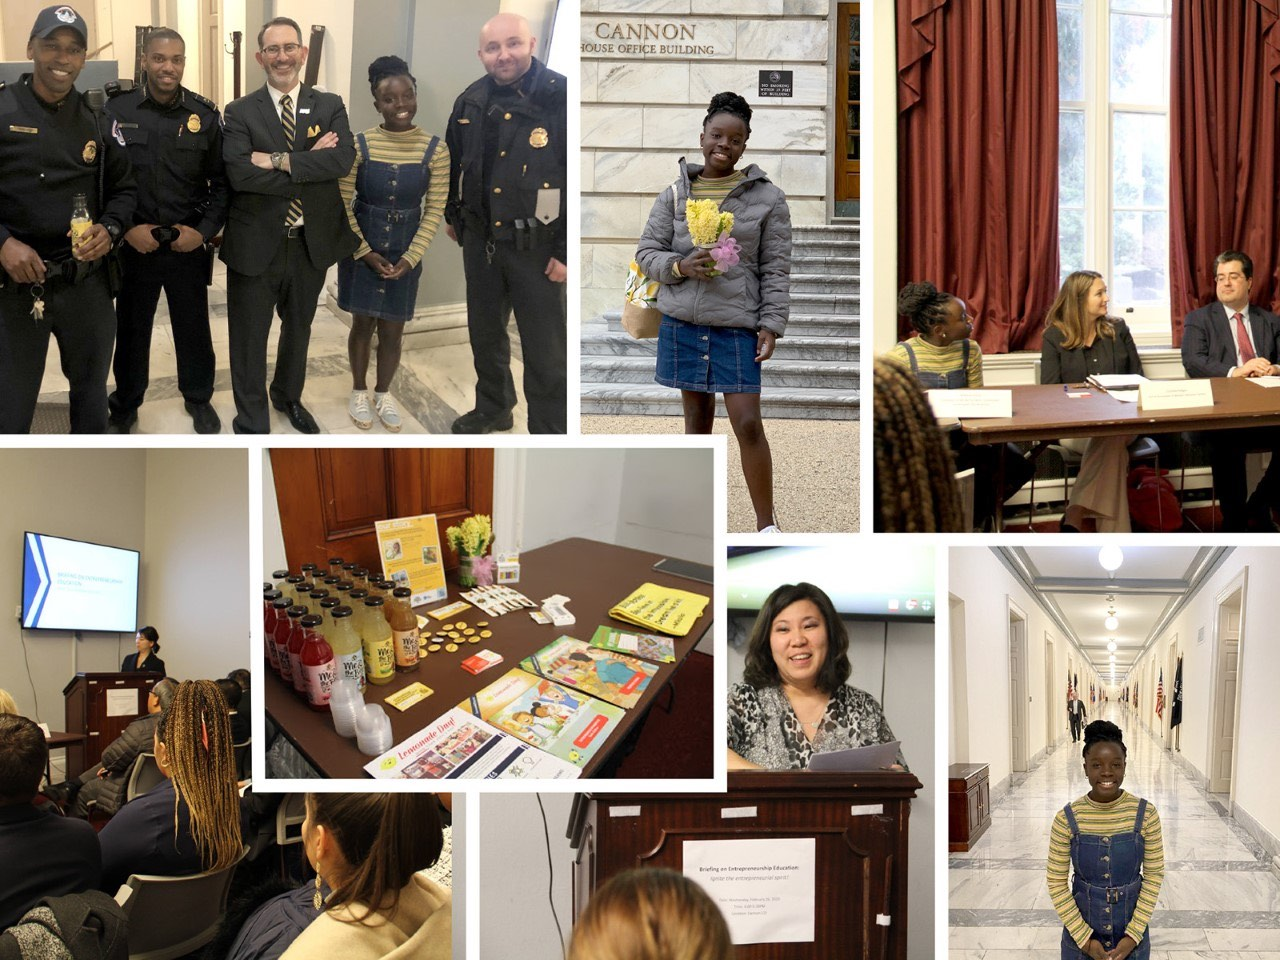 Mikaila Goes to Washington to Advocate for Youth Entrepreneurship